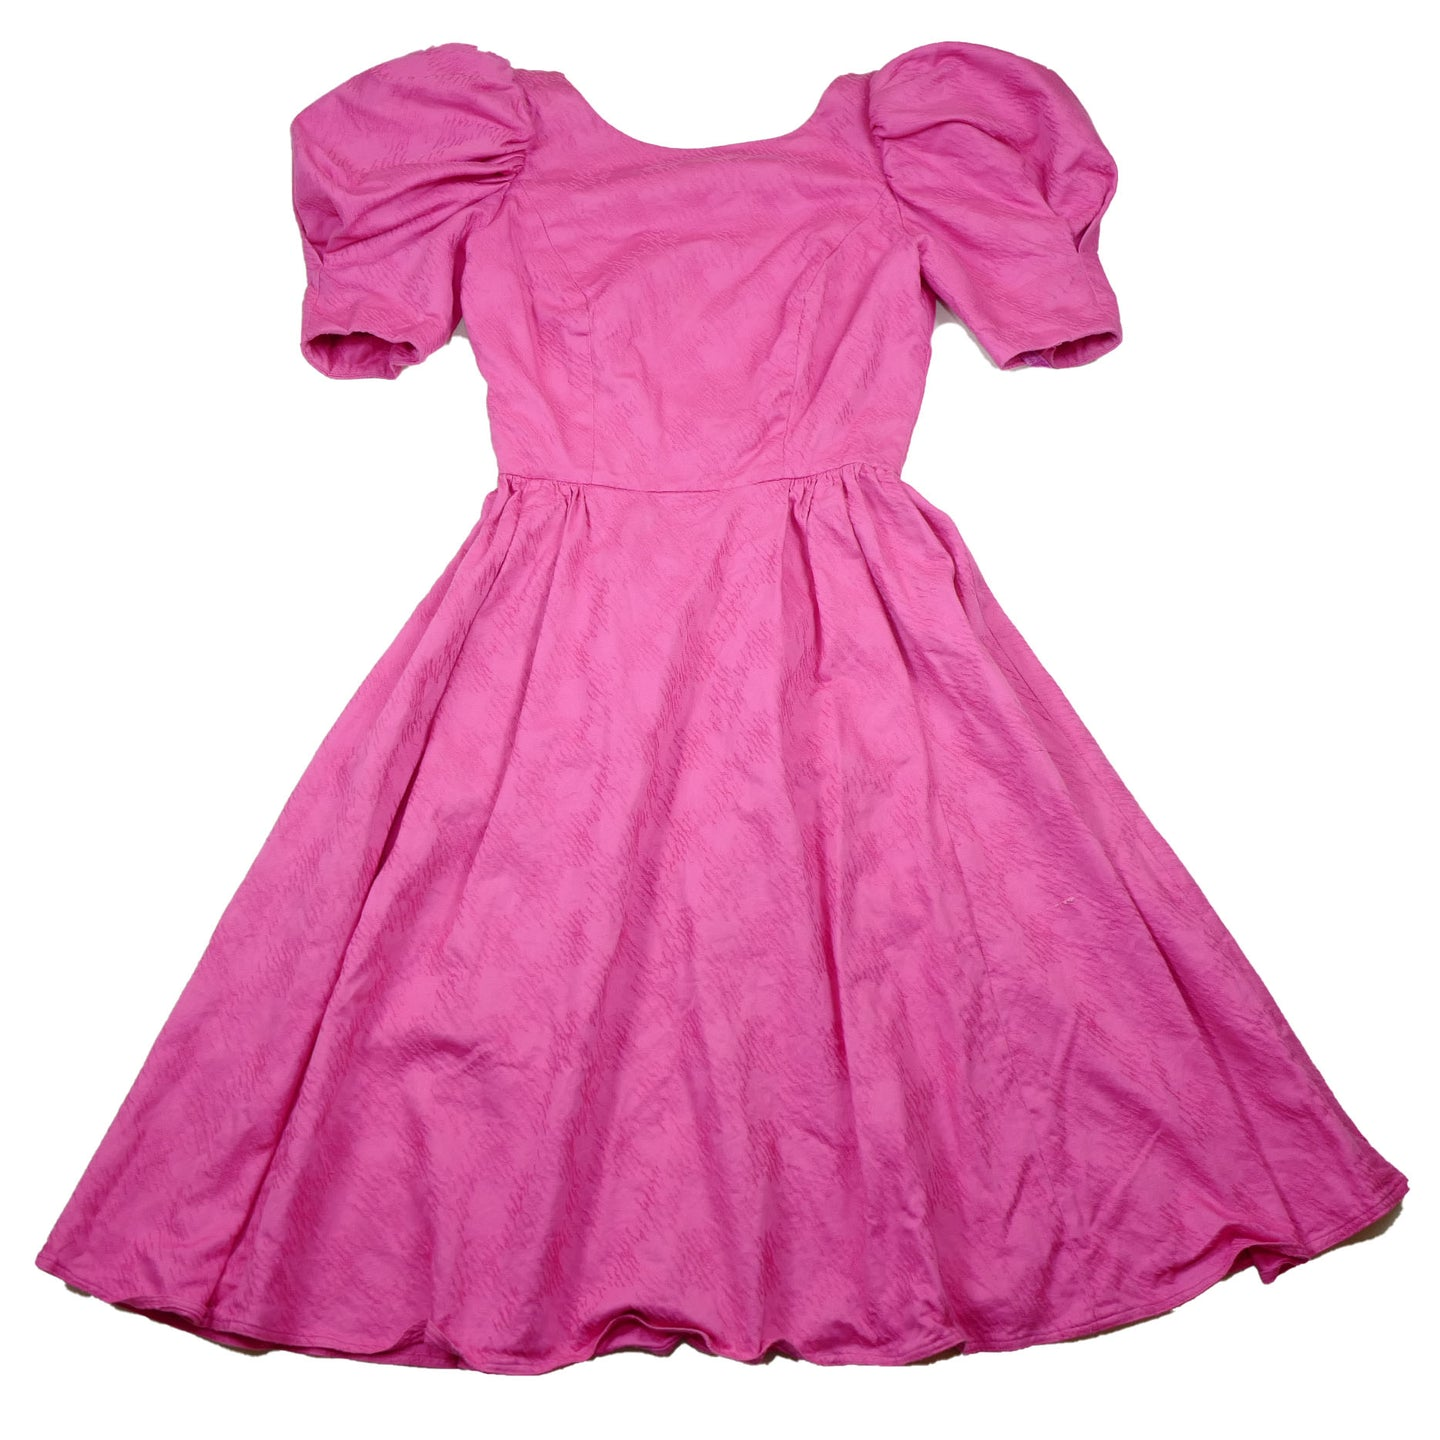 Vintage 80's Pretty in Pink Party Dress